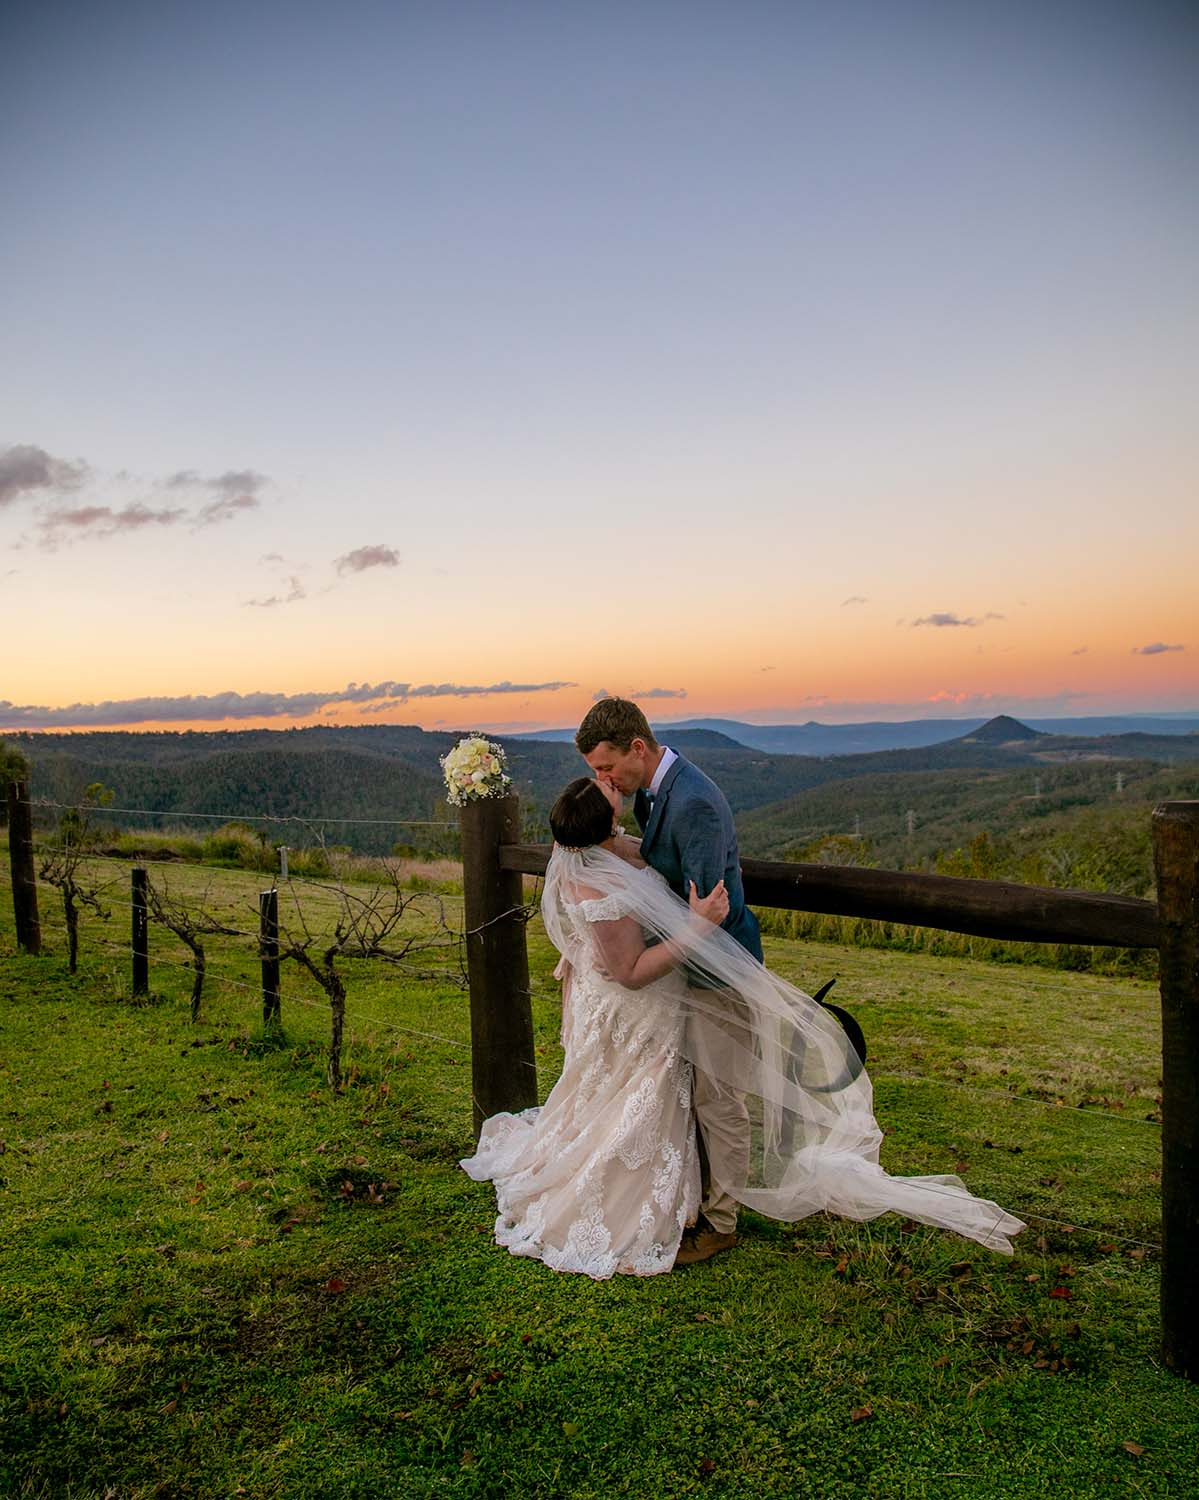 Wedding Photography - Bride and Groom at sunset